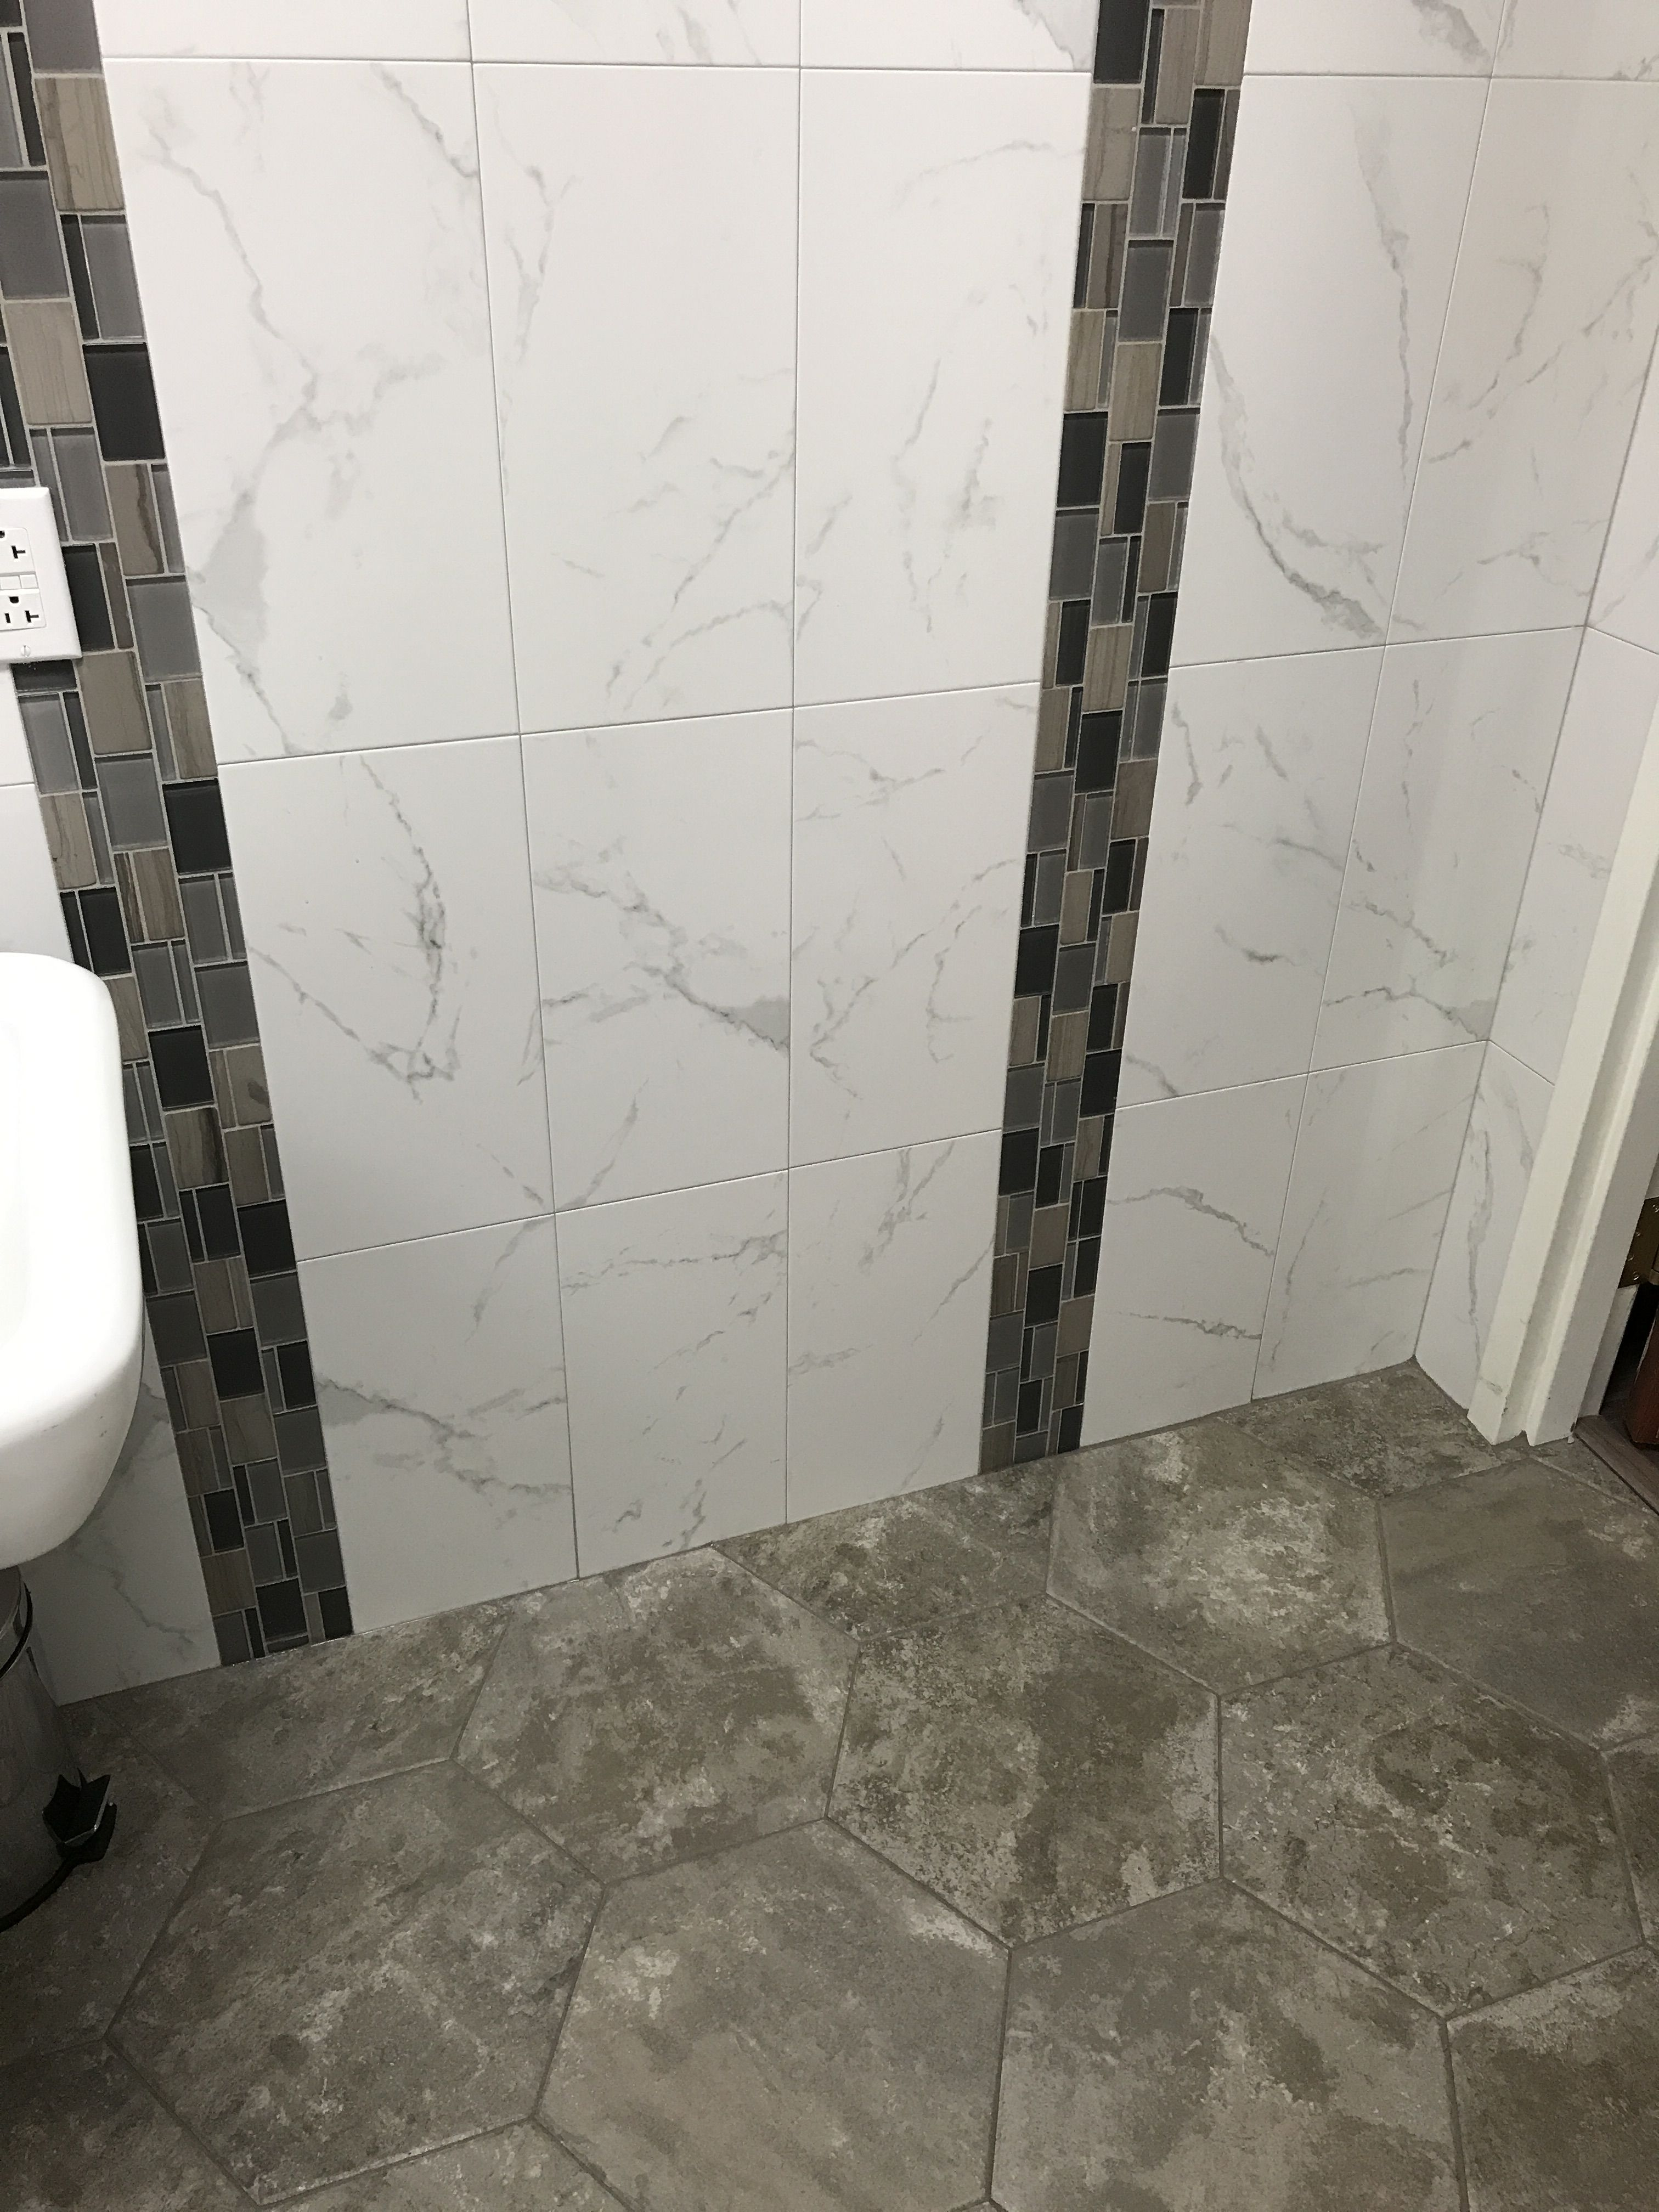 Porcelain wall tile that looks like marble with glass and stone